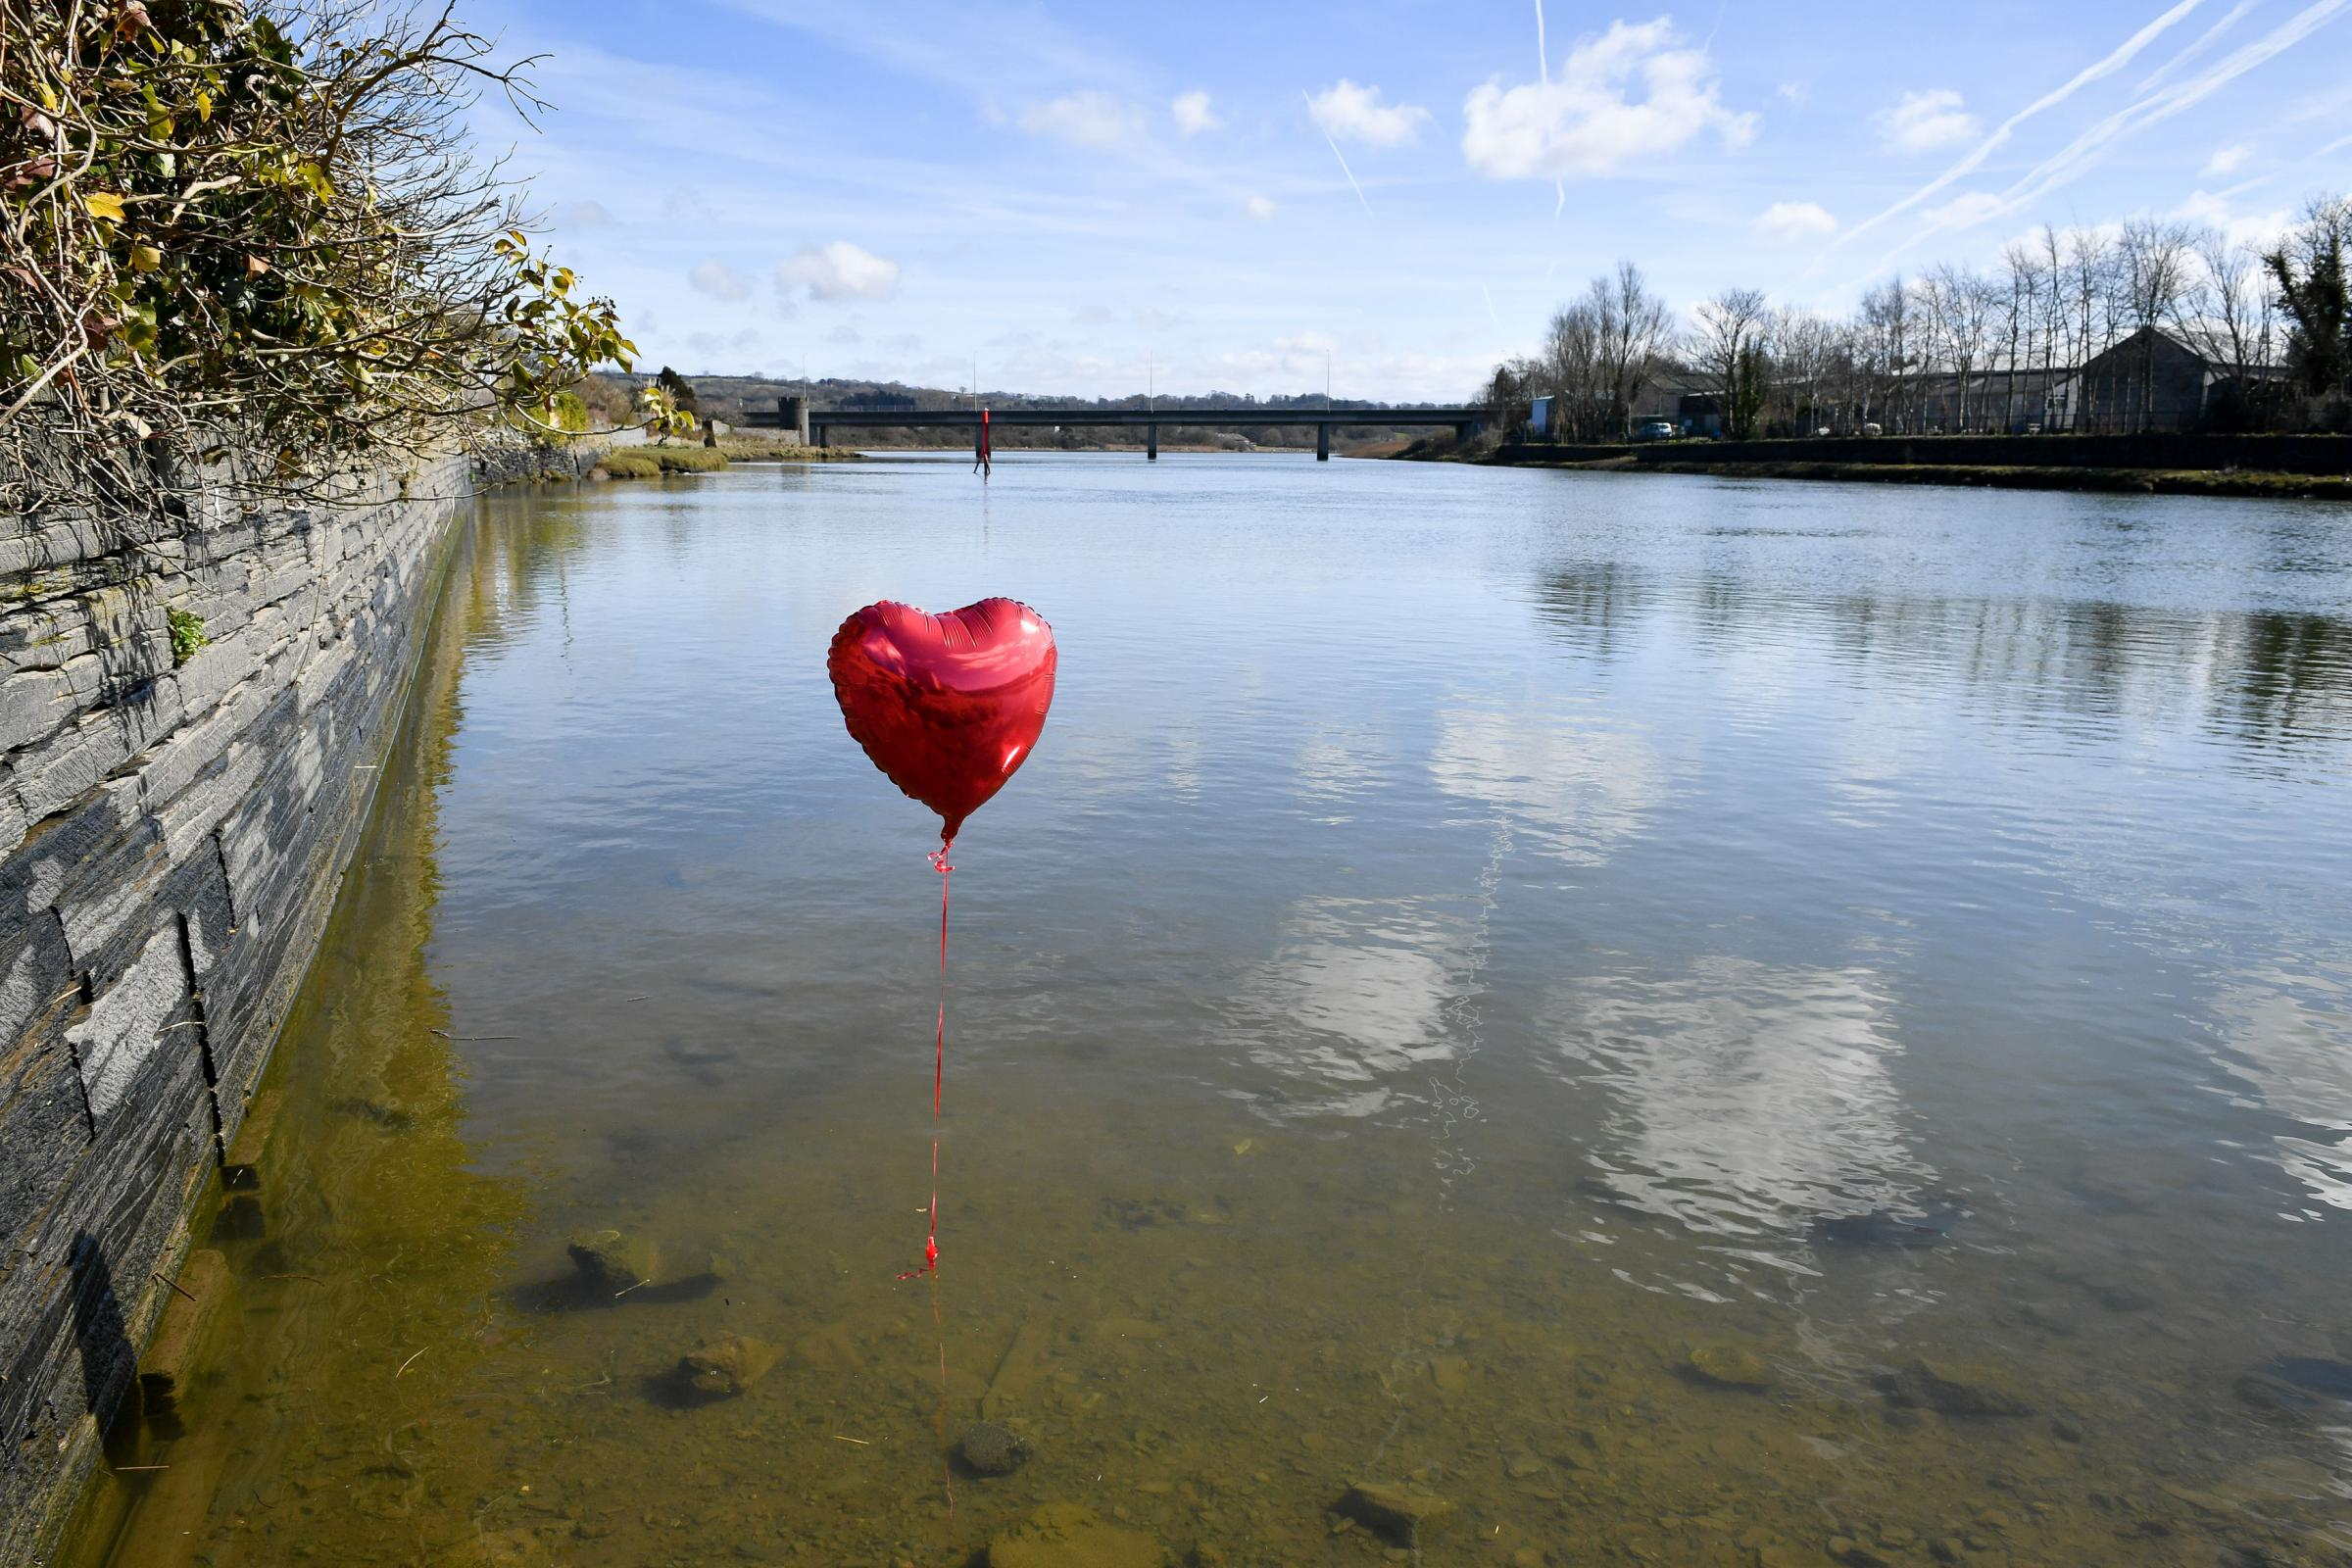 A red balloon in the River Teifi in Cardigan, Wales, near the scene where two-year-old Kiara Moore was recovered from a car that had plunged into the river. Picture: PA / Ben Birchall